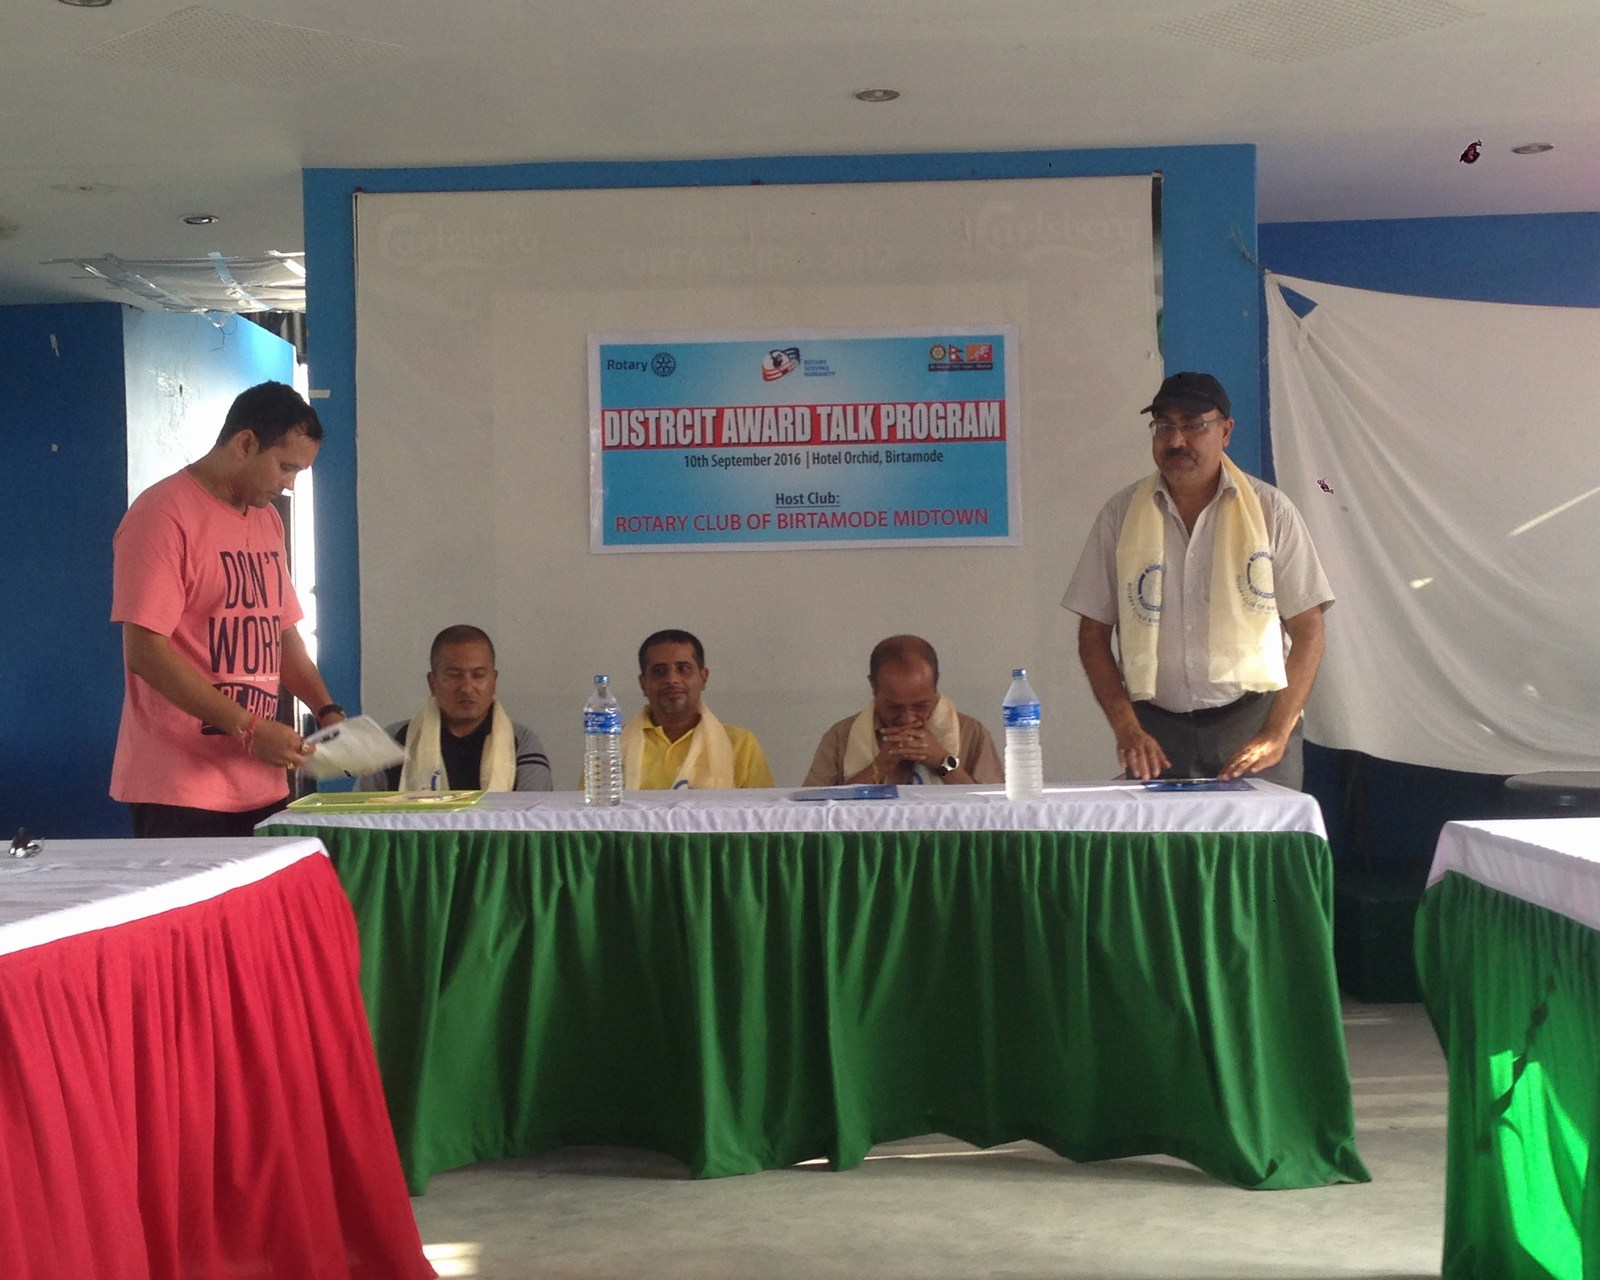 District-Award-Talk-Program-Rotary-Club-of-Kakarvitta-1